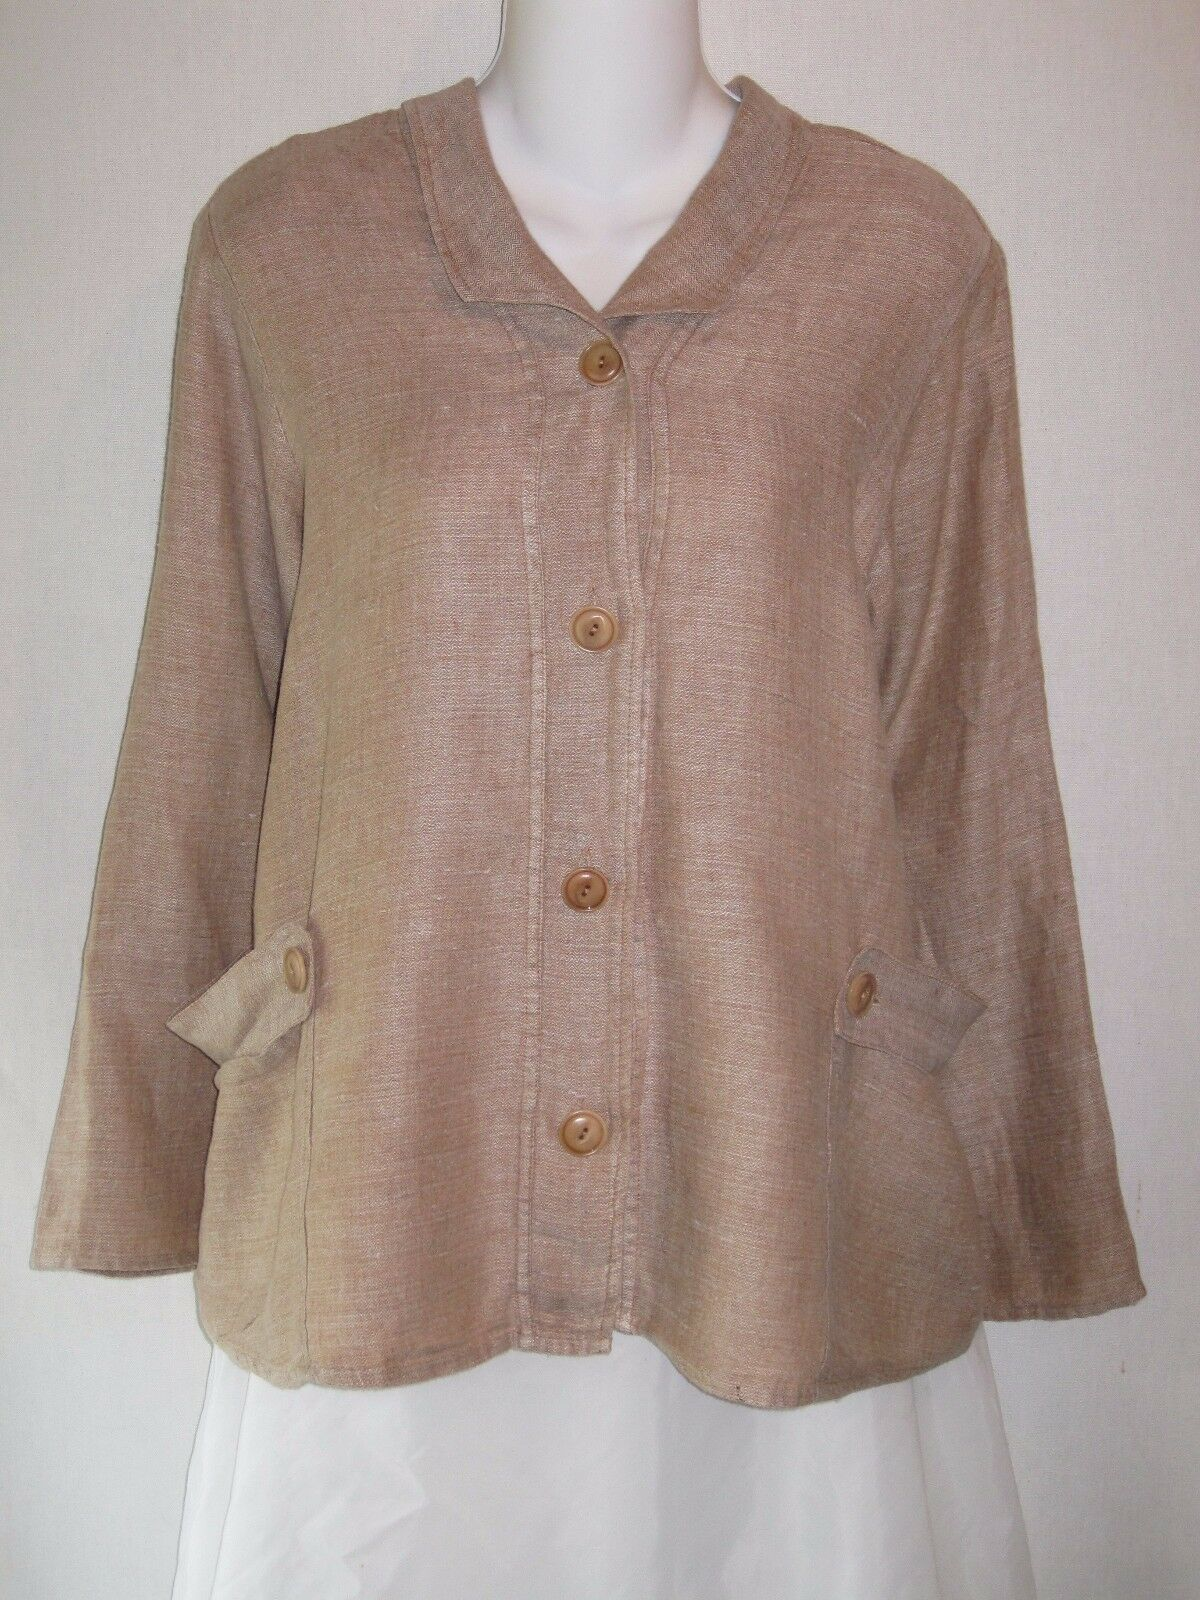 FLAX by Jeanne Engelhart Long Sleeve Linen Button Front Top Shirt Petite P